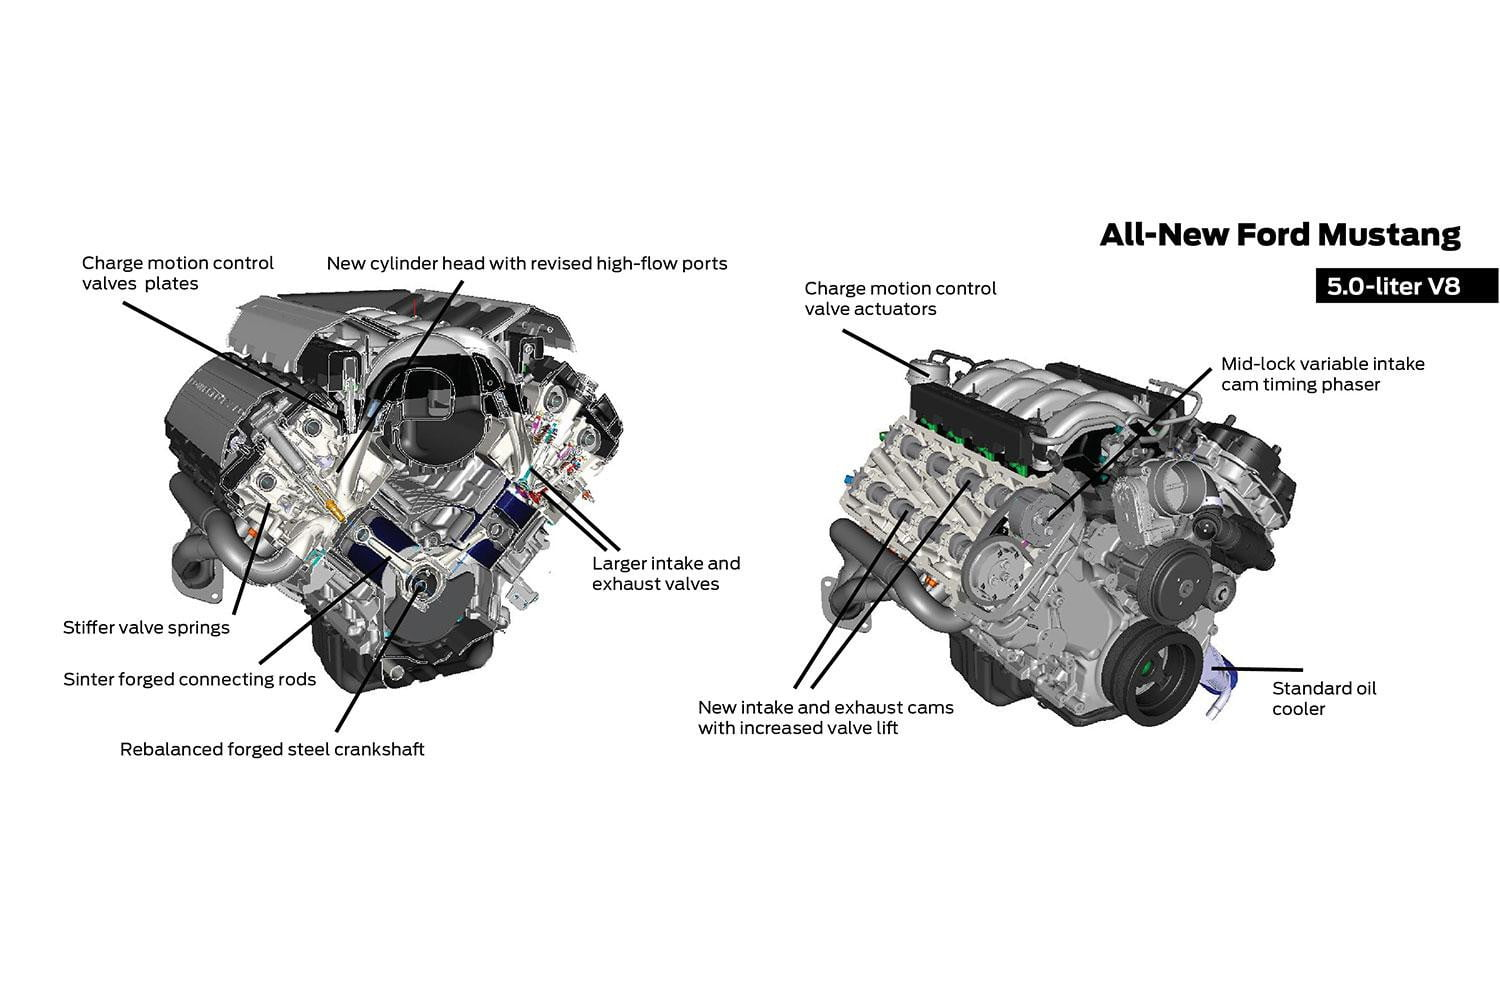 2015 ford mustang engine specs and rumors digital trends 2015 ford mustang5 0 liter coyote v8